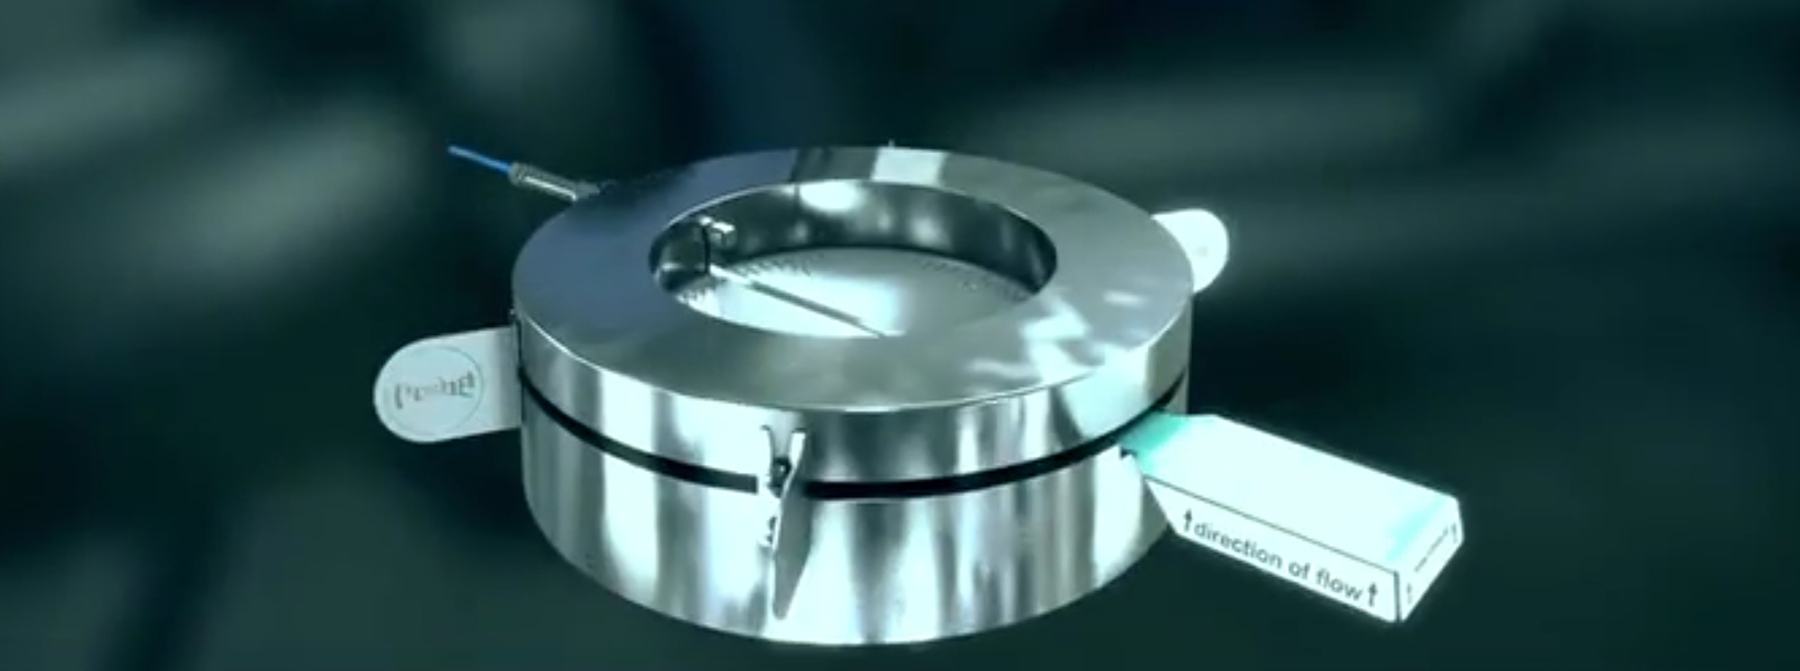 REMBE® KUB® – the most reliable rupture disc